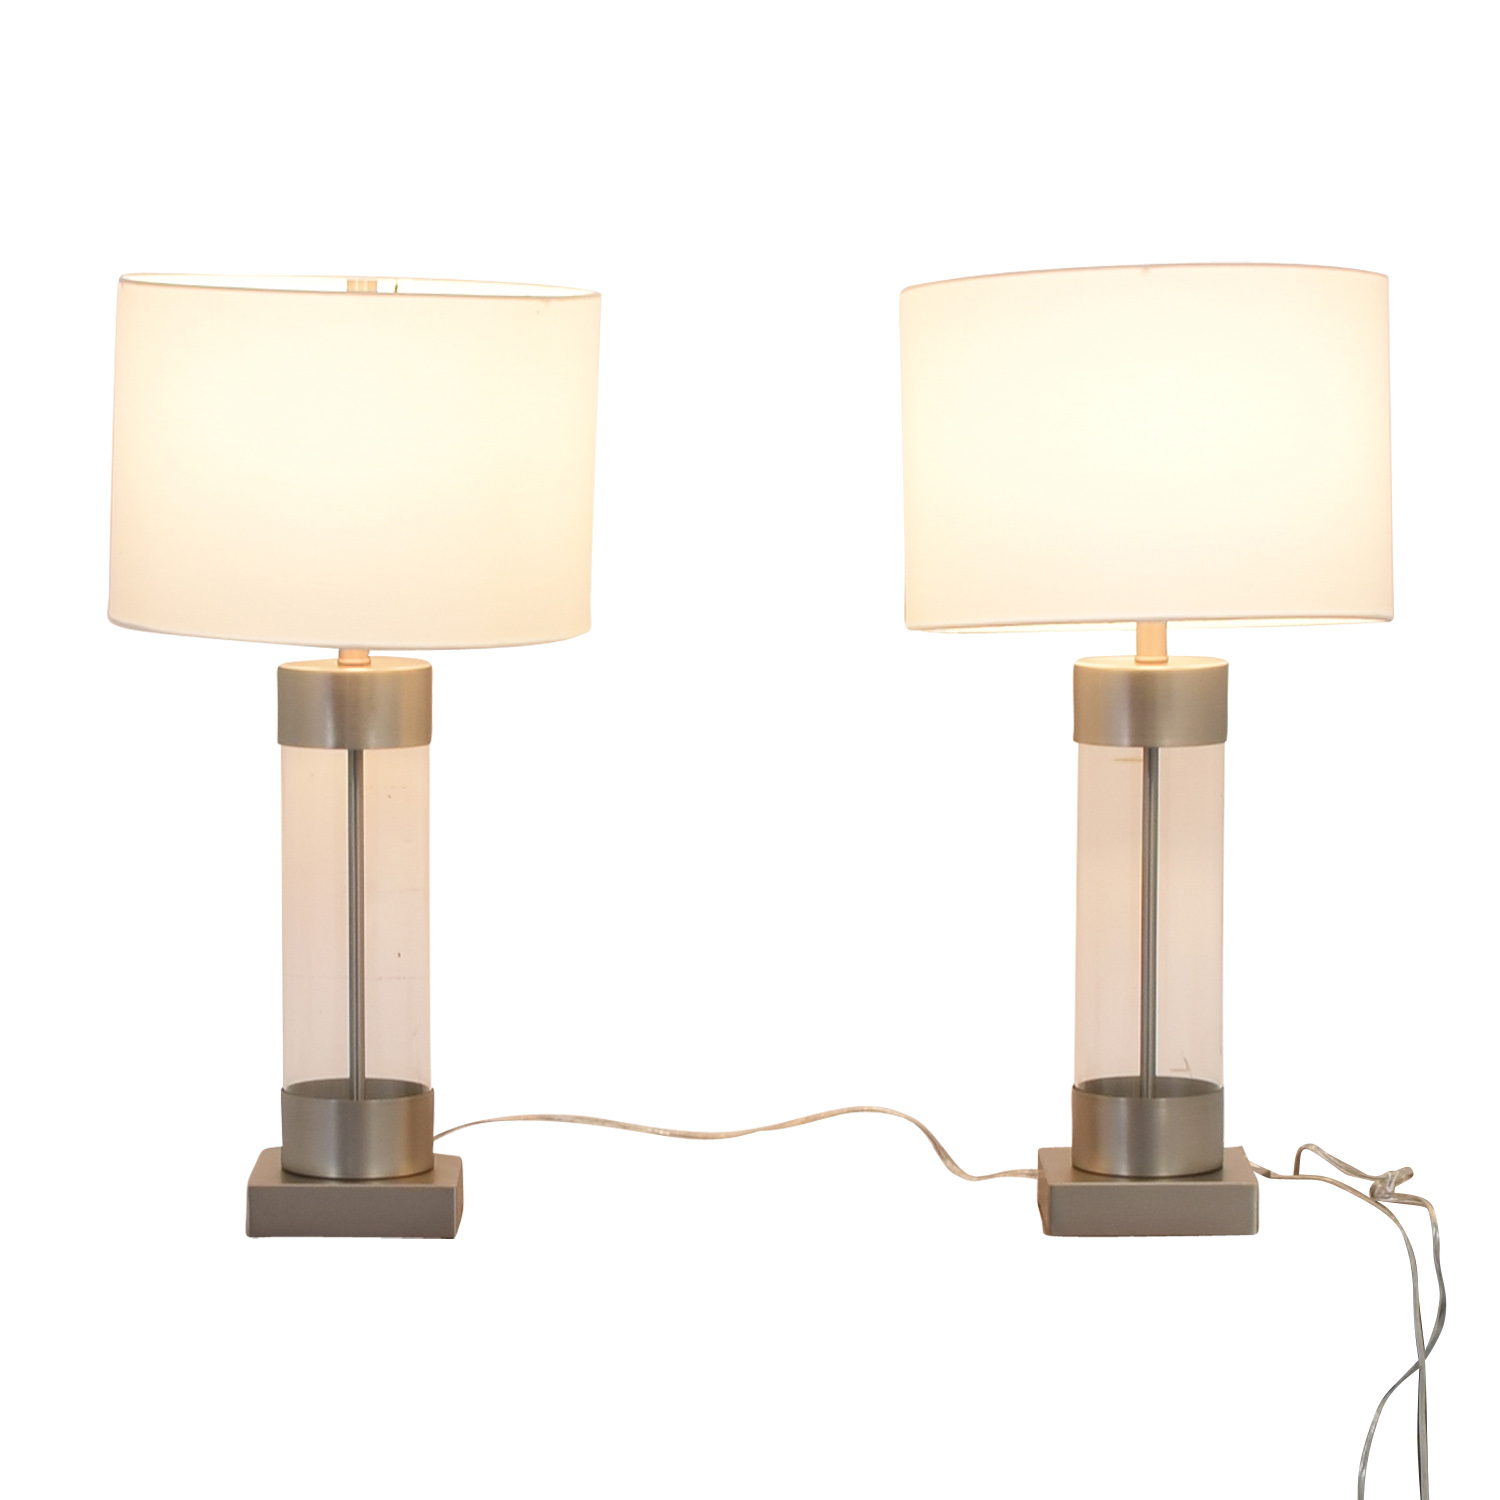 Crate & Barrel Crate & Barrel Avenue Table Lamps with USB port for sale